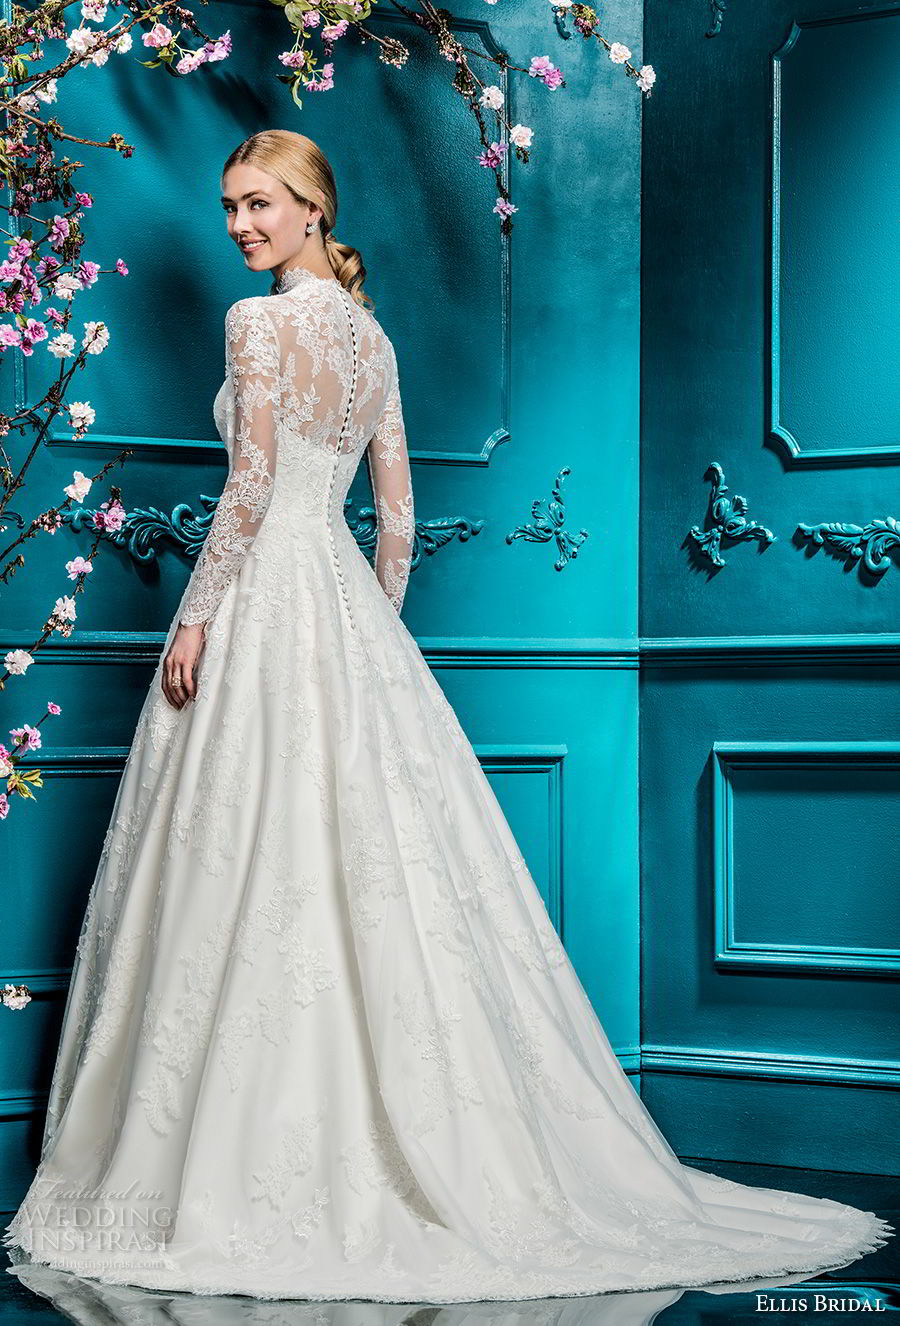 ellis bridals 2018 long sleeves illusion high neck sweetheart neckline full embellishment elegant princess a line wedding dress covered lace back chapel train (2) bv